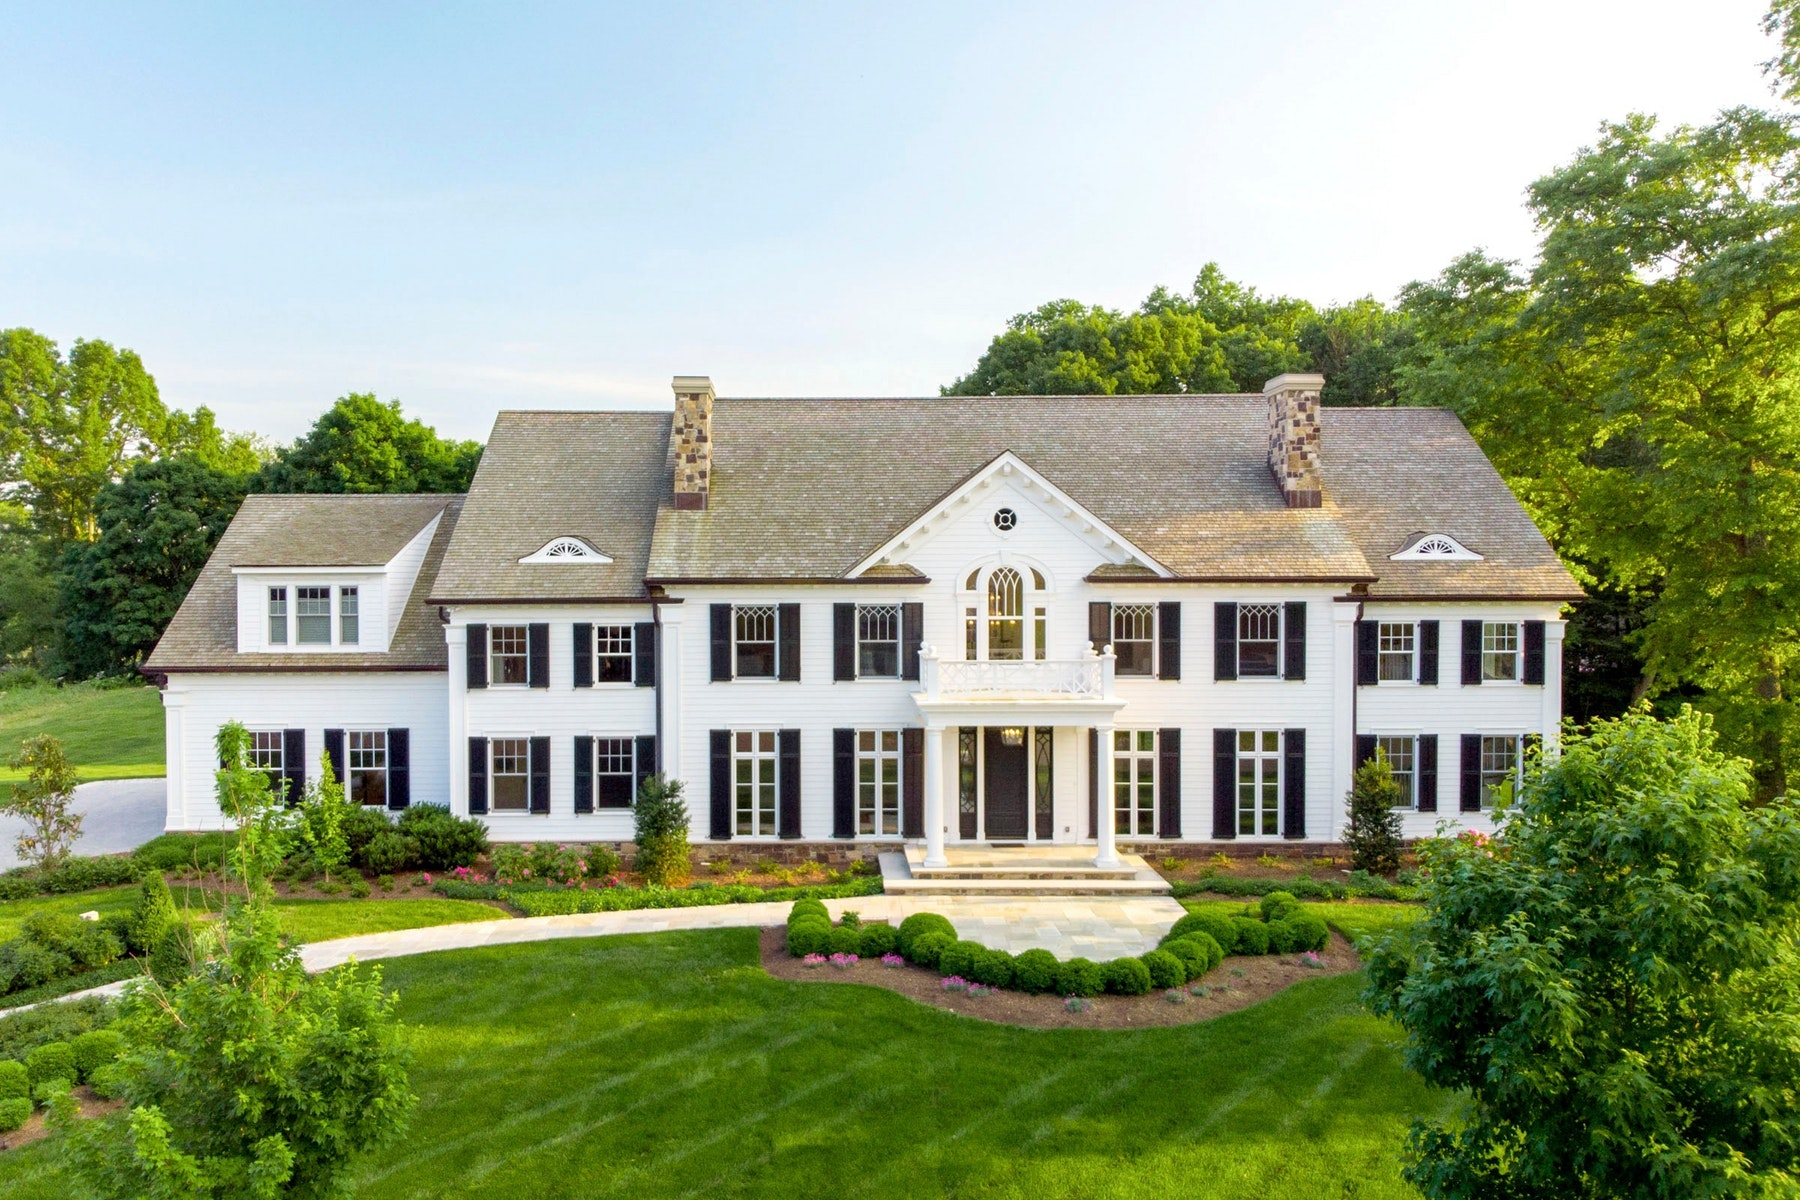 Maison unifamiliale pour l Vente à Showcase Home 5 Mill Brook Lane Franklin Lakes, New Jersey 07417 États-Unis